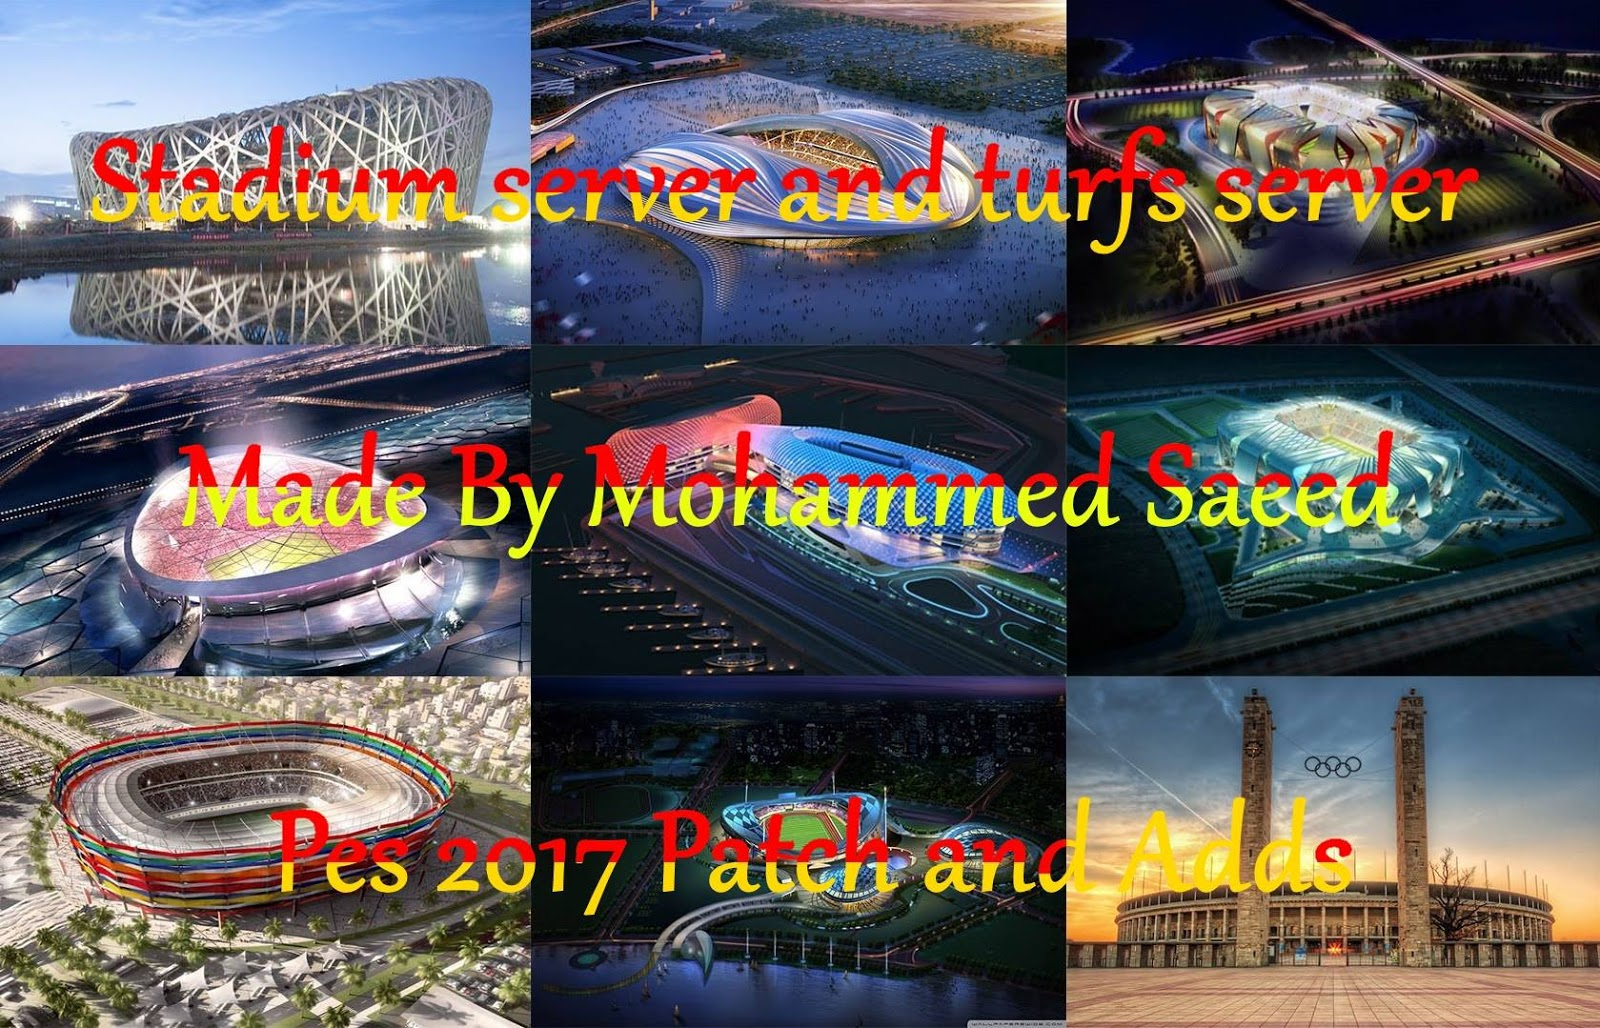 PES 2017 Stadiums server and Turfs server made BY mohammed saeed